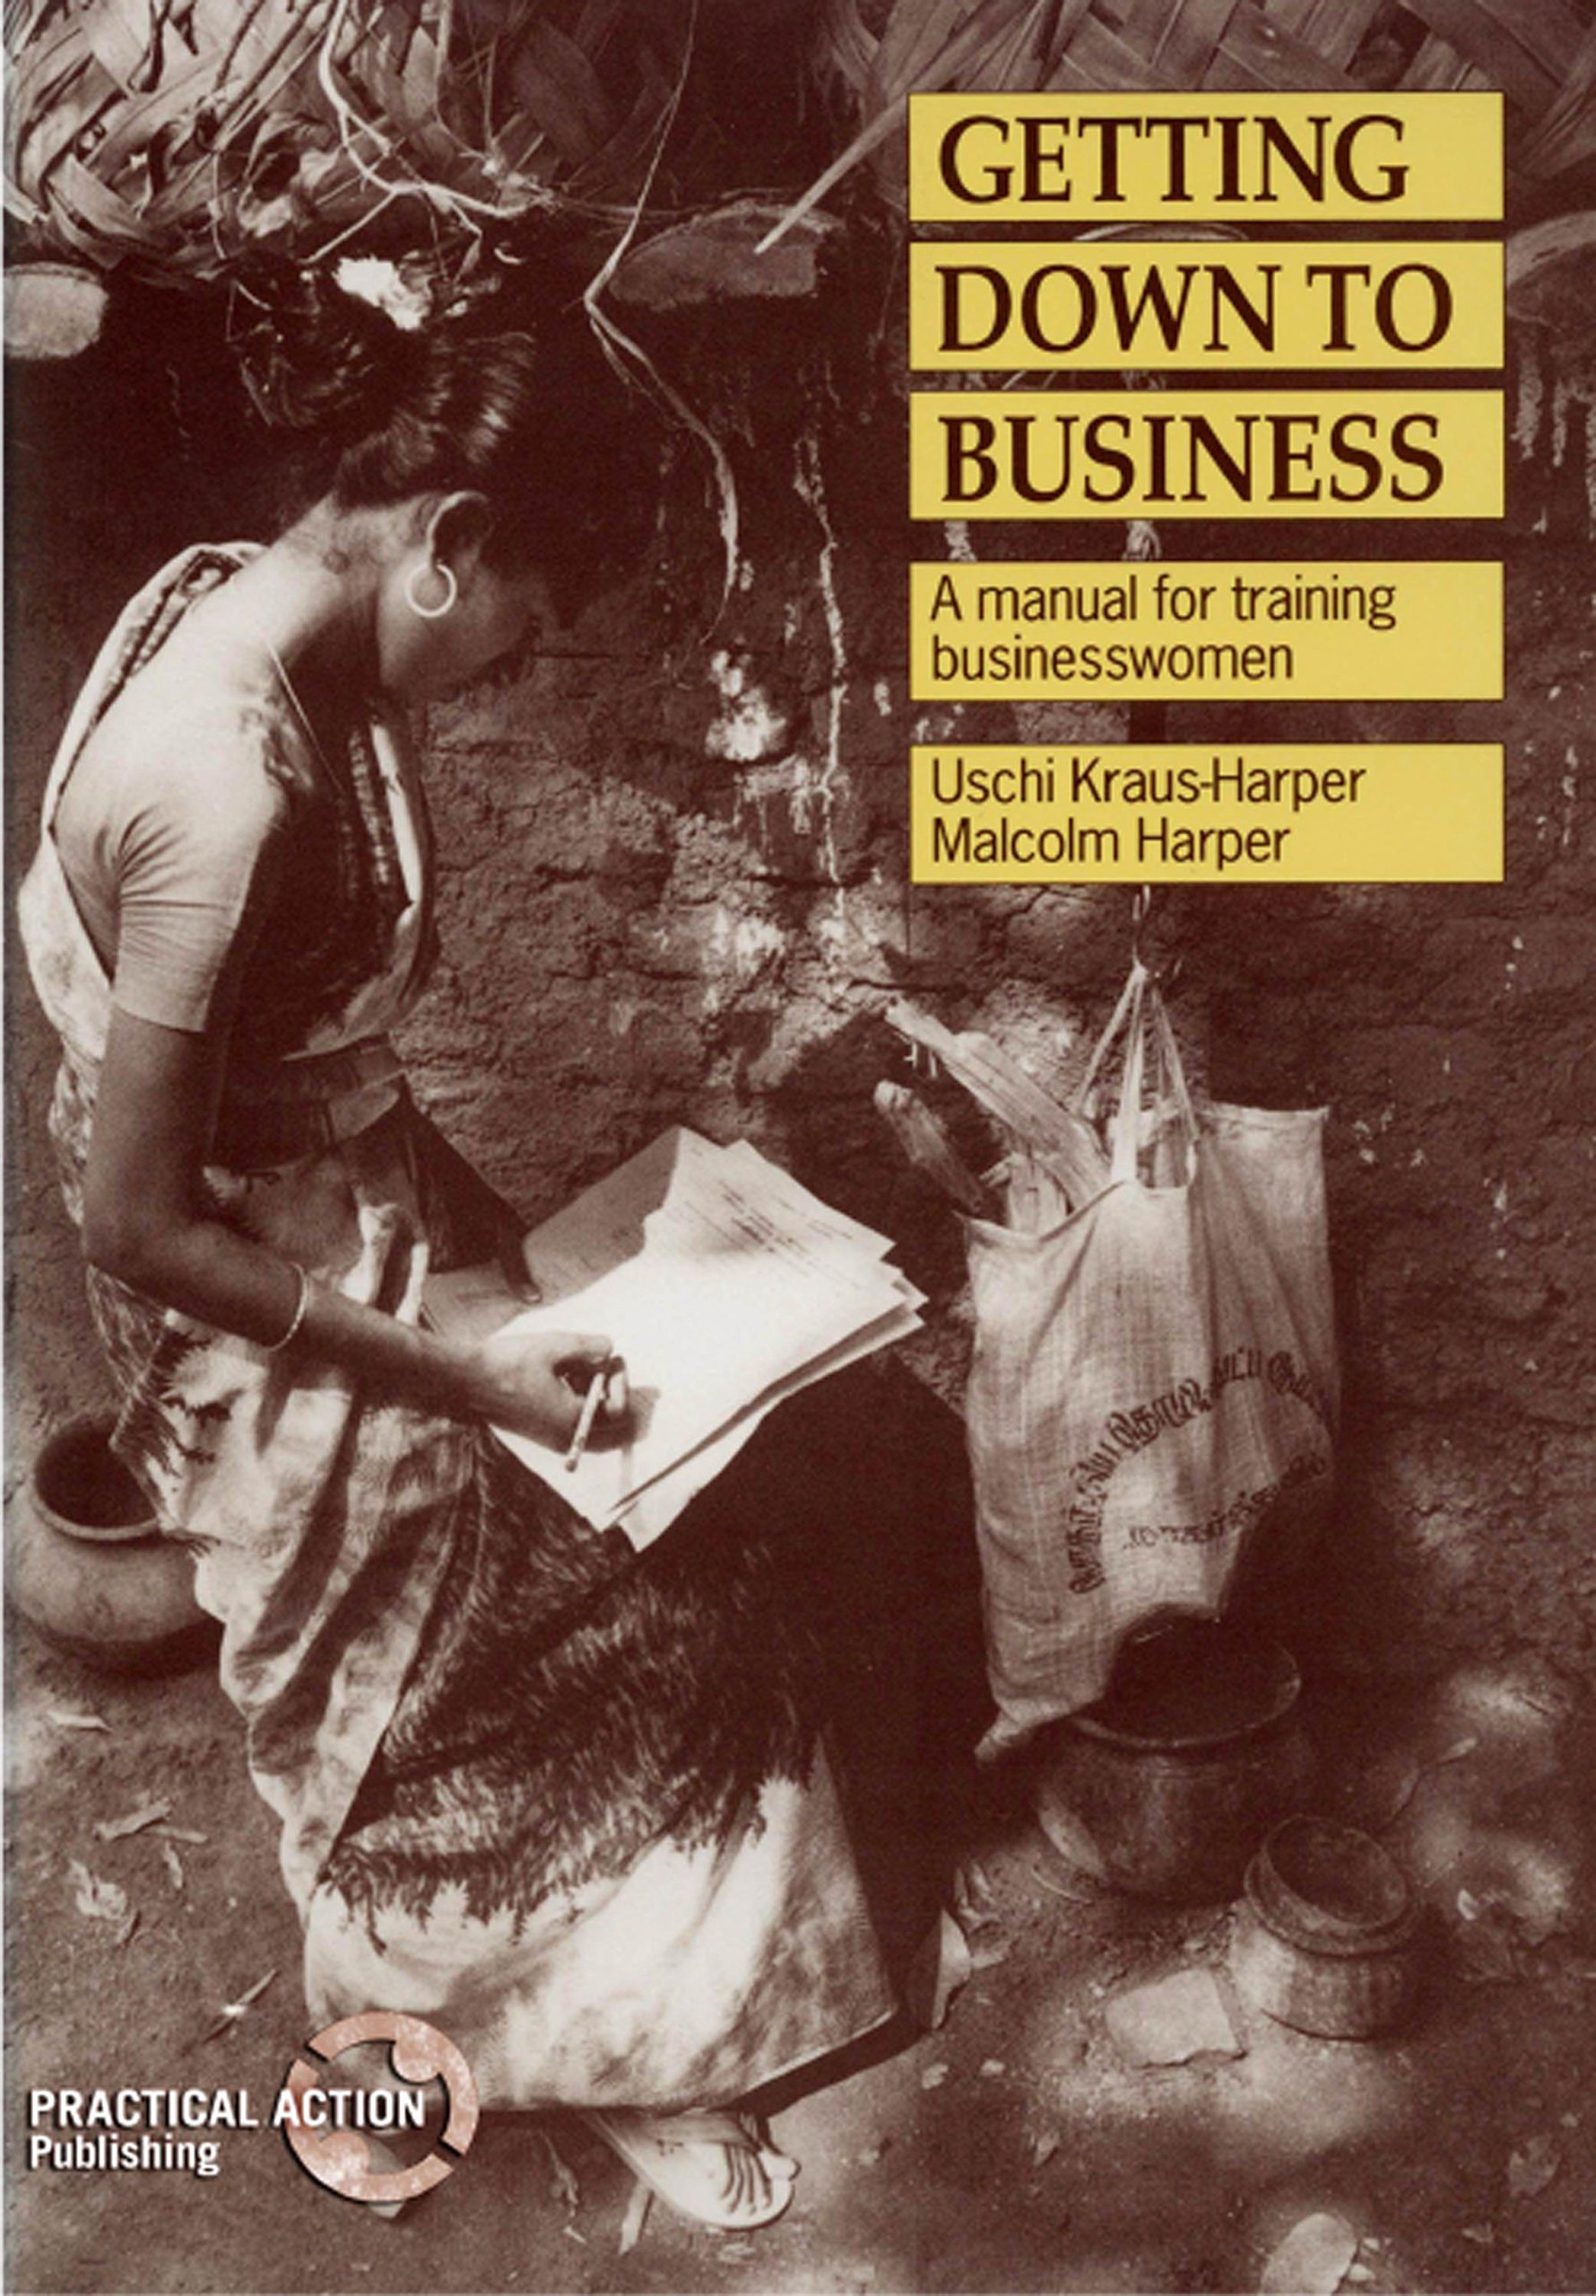 Getting Down to Business: A Training Manual for Businesswomen (Manual for Training  Businesswomen): Uschi Kraus-Harper, Malcolm Harper: 9781853391132: ...